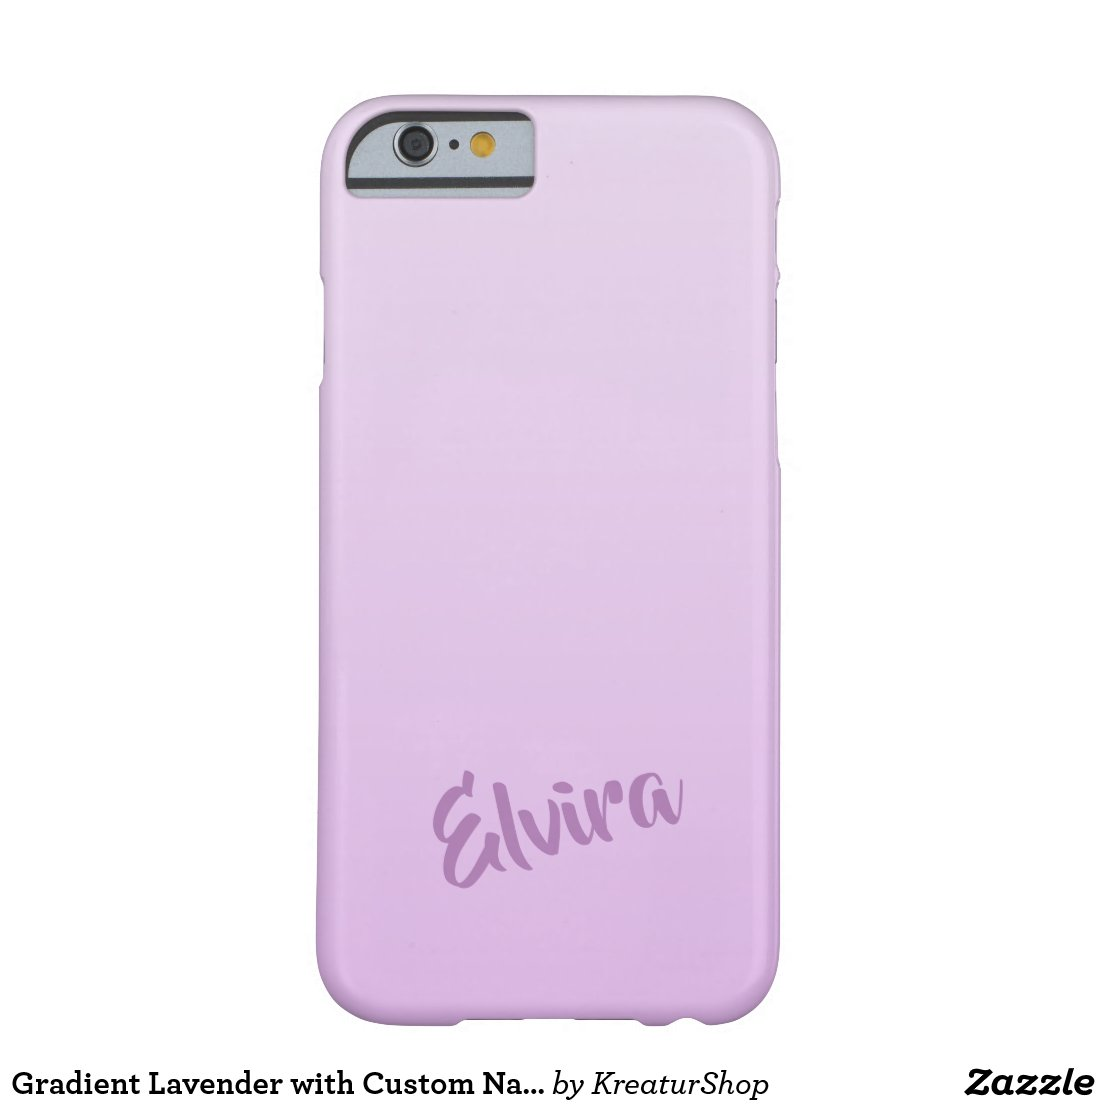 Gradient Lavender with Custom Name